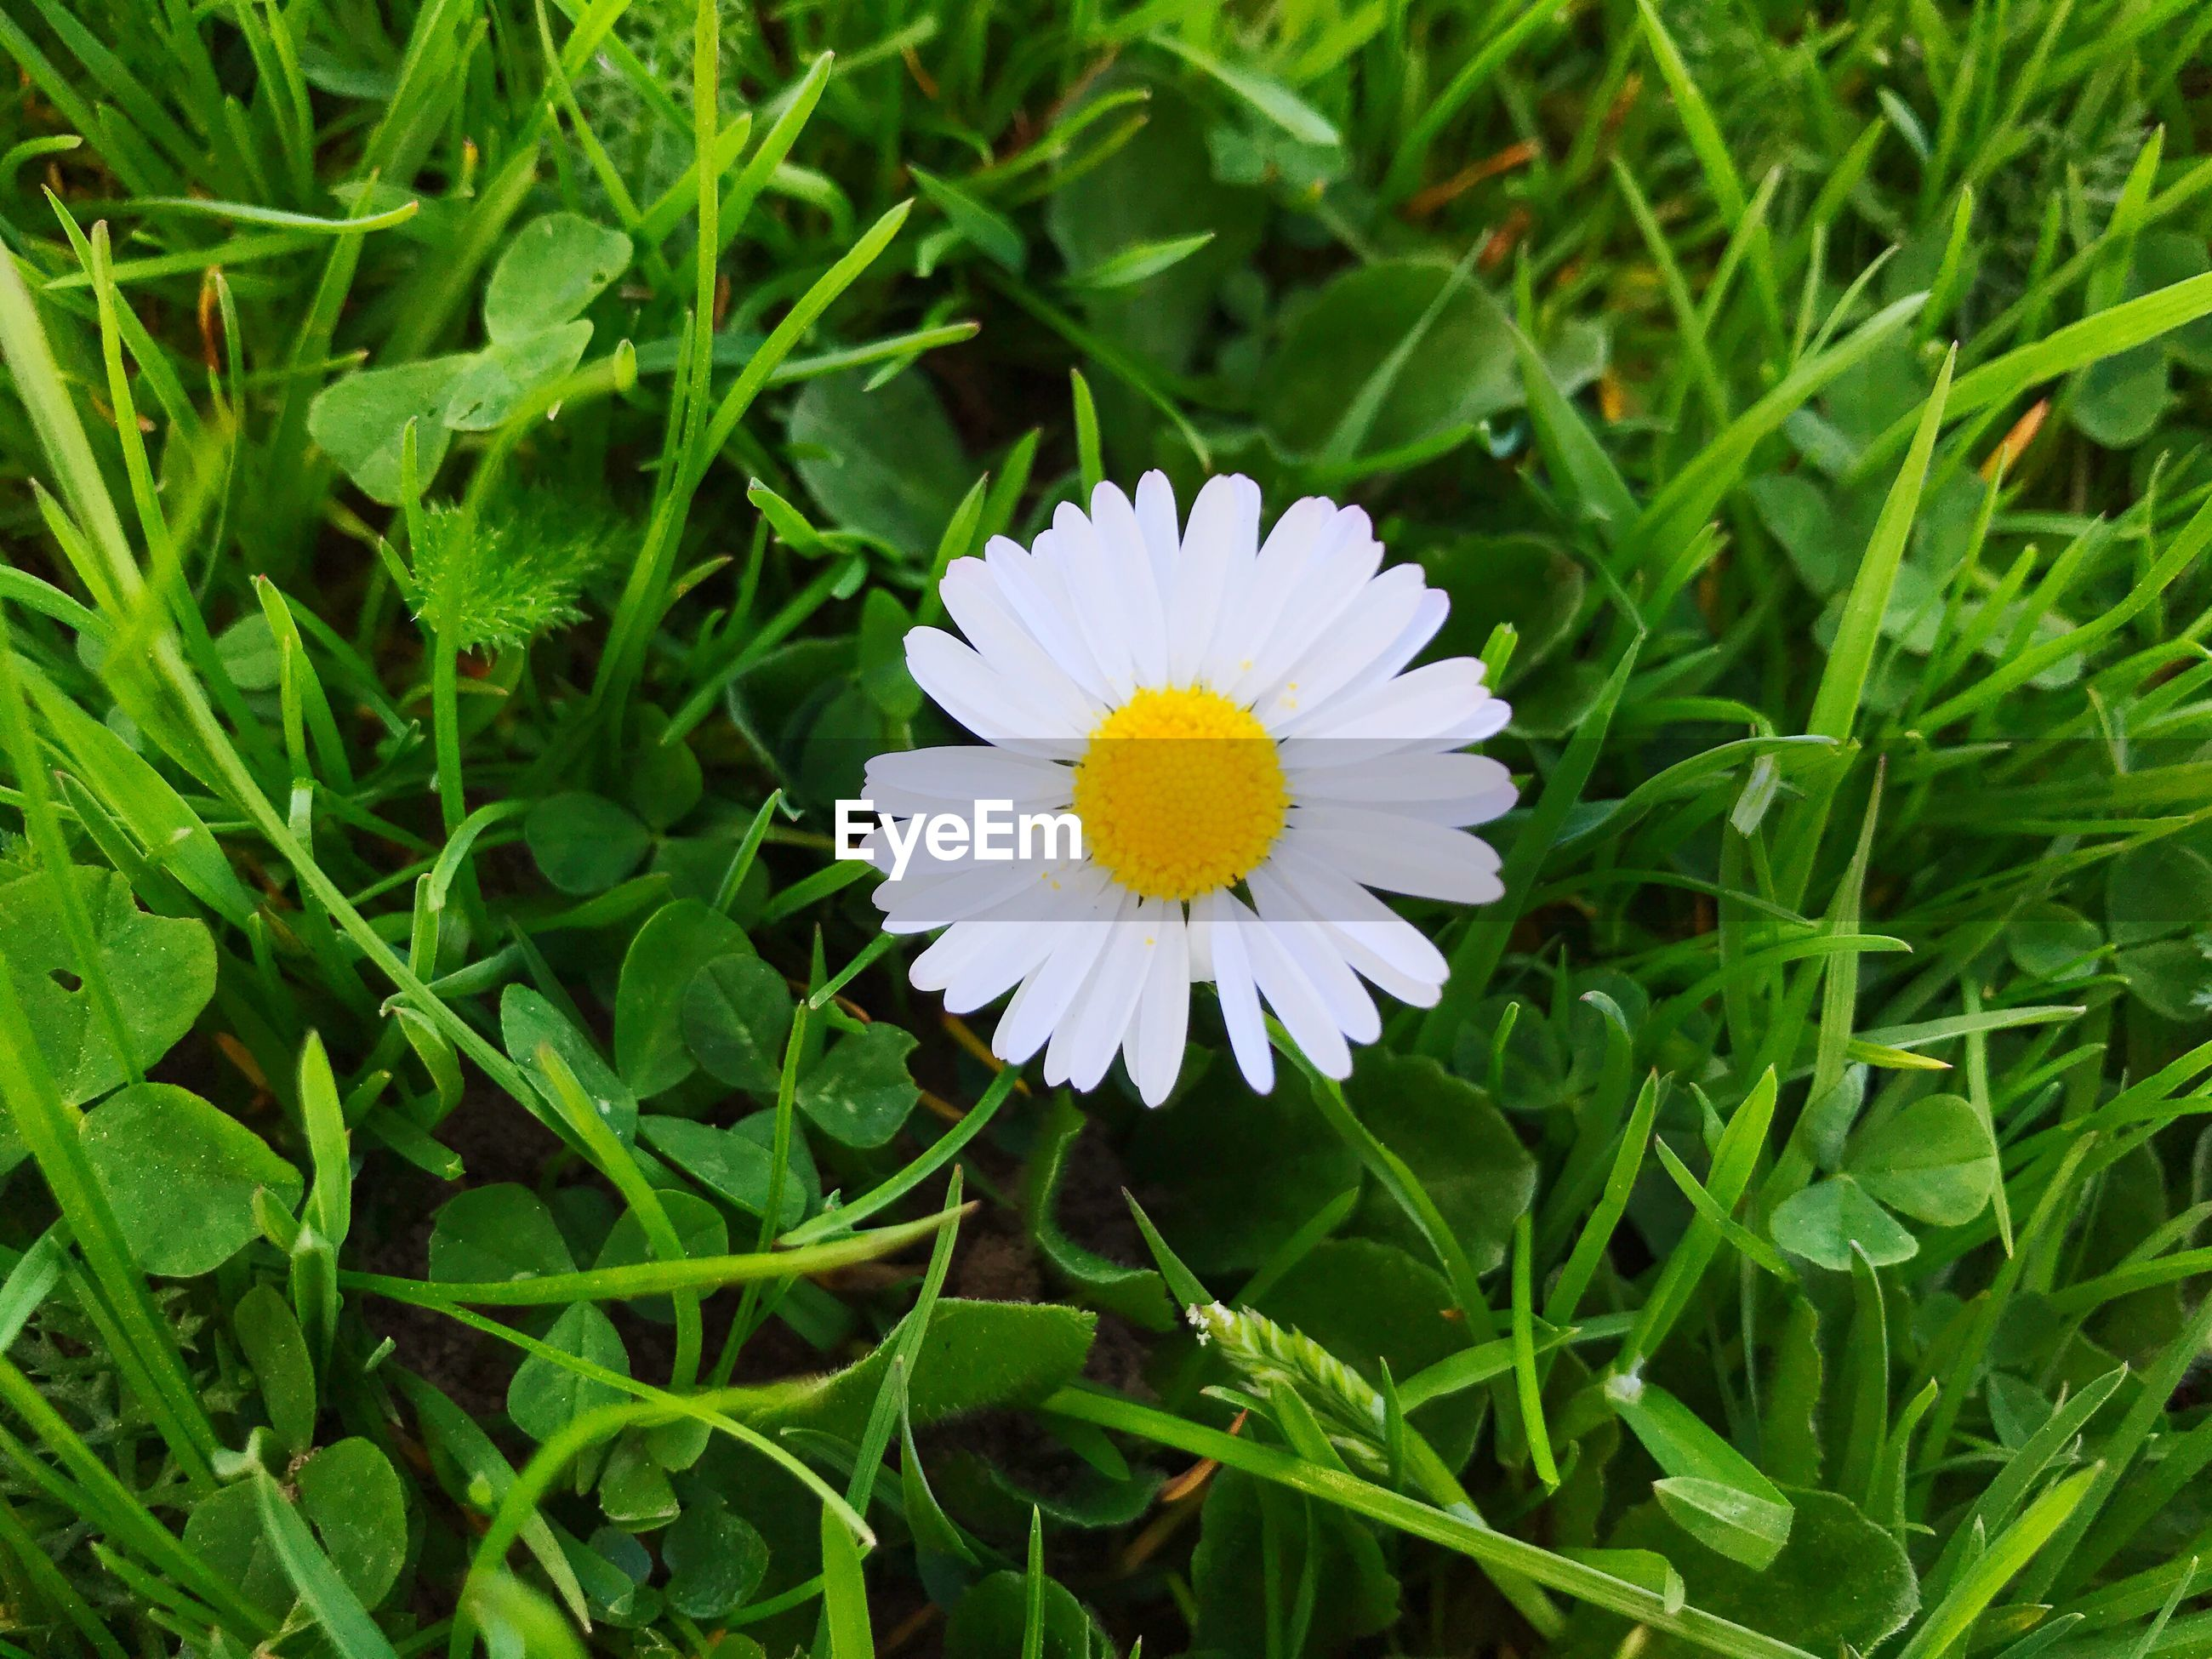 CLOSE-UP OF DAISY ON FIELD